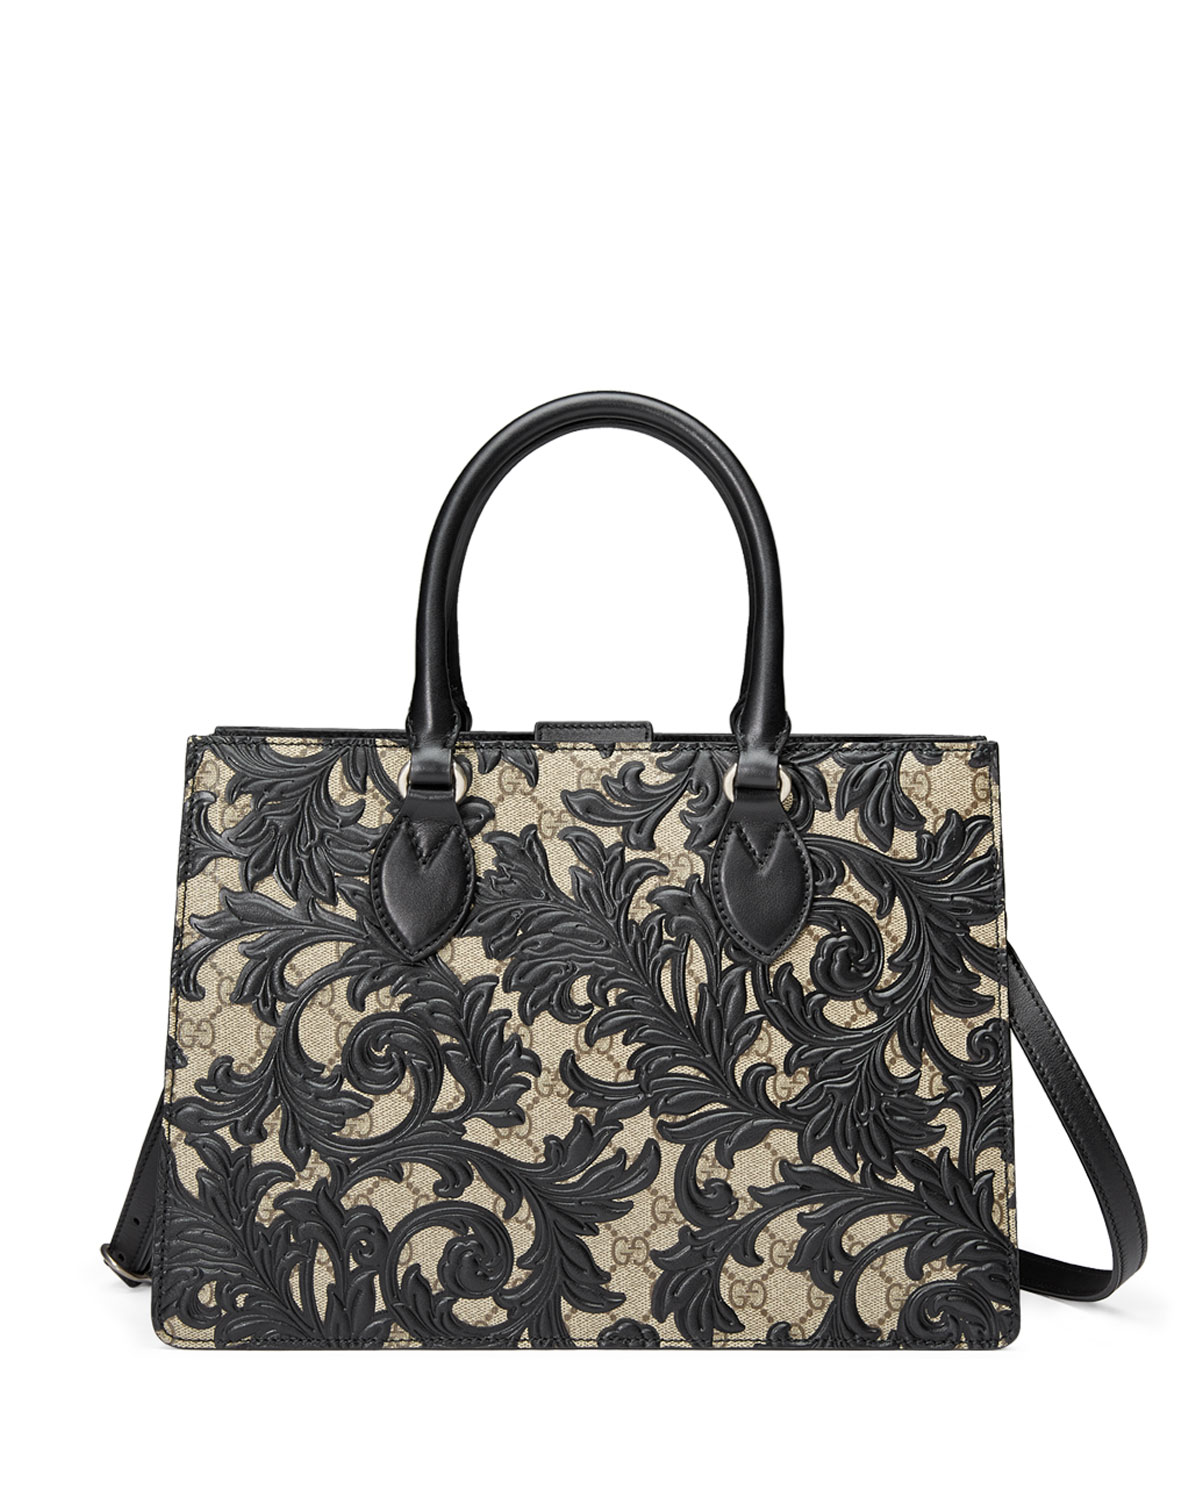 c661e9969b07 Gucci Arabesque Canvas Top Handle Bag, Black | Neiman Marcus